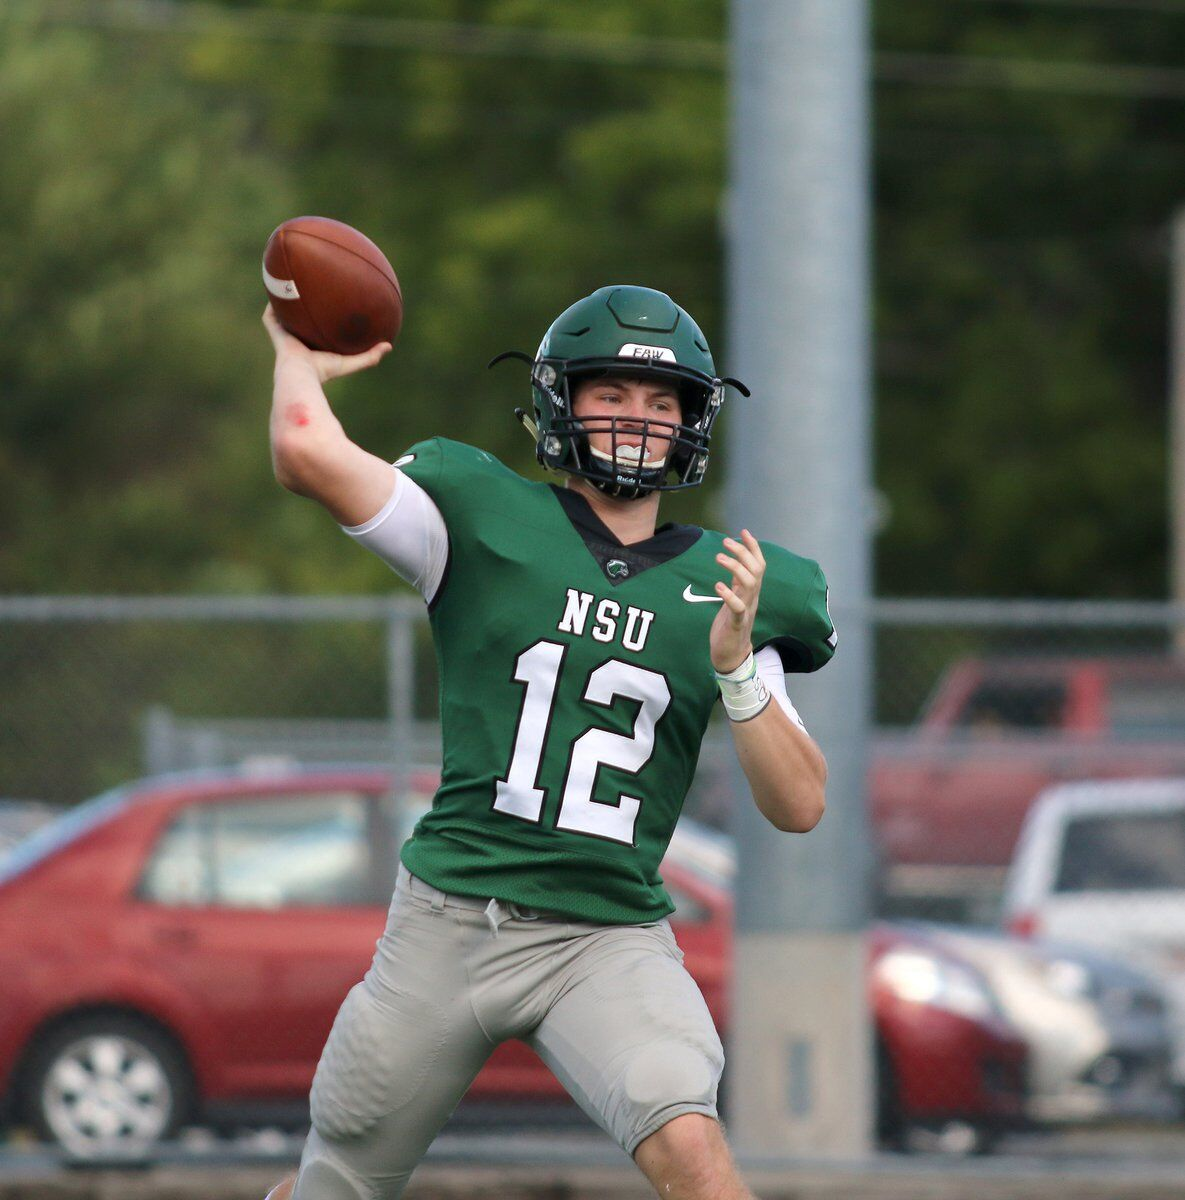 SECOND HALF WOES: RiverHawks sputter in final 30 minutes, fall to Central Missouri